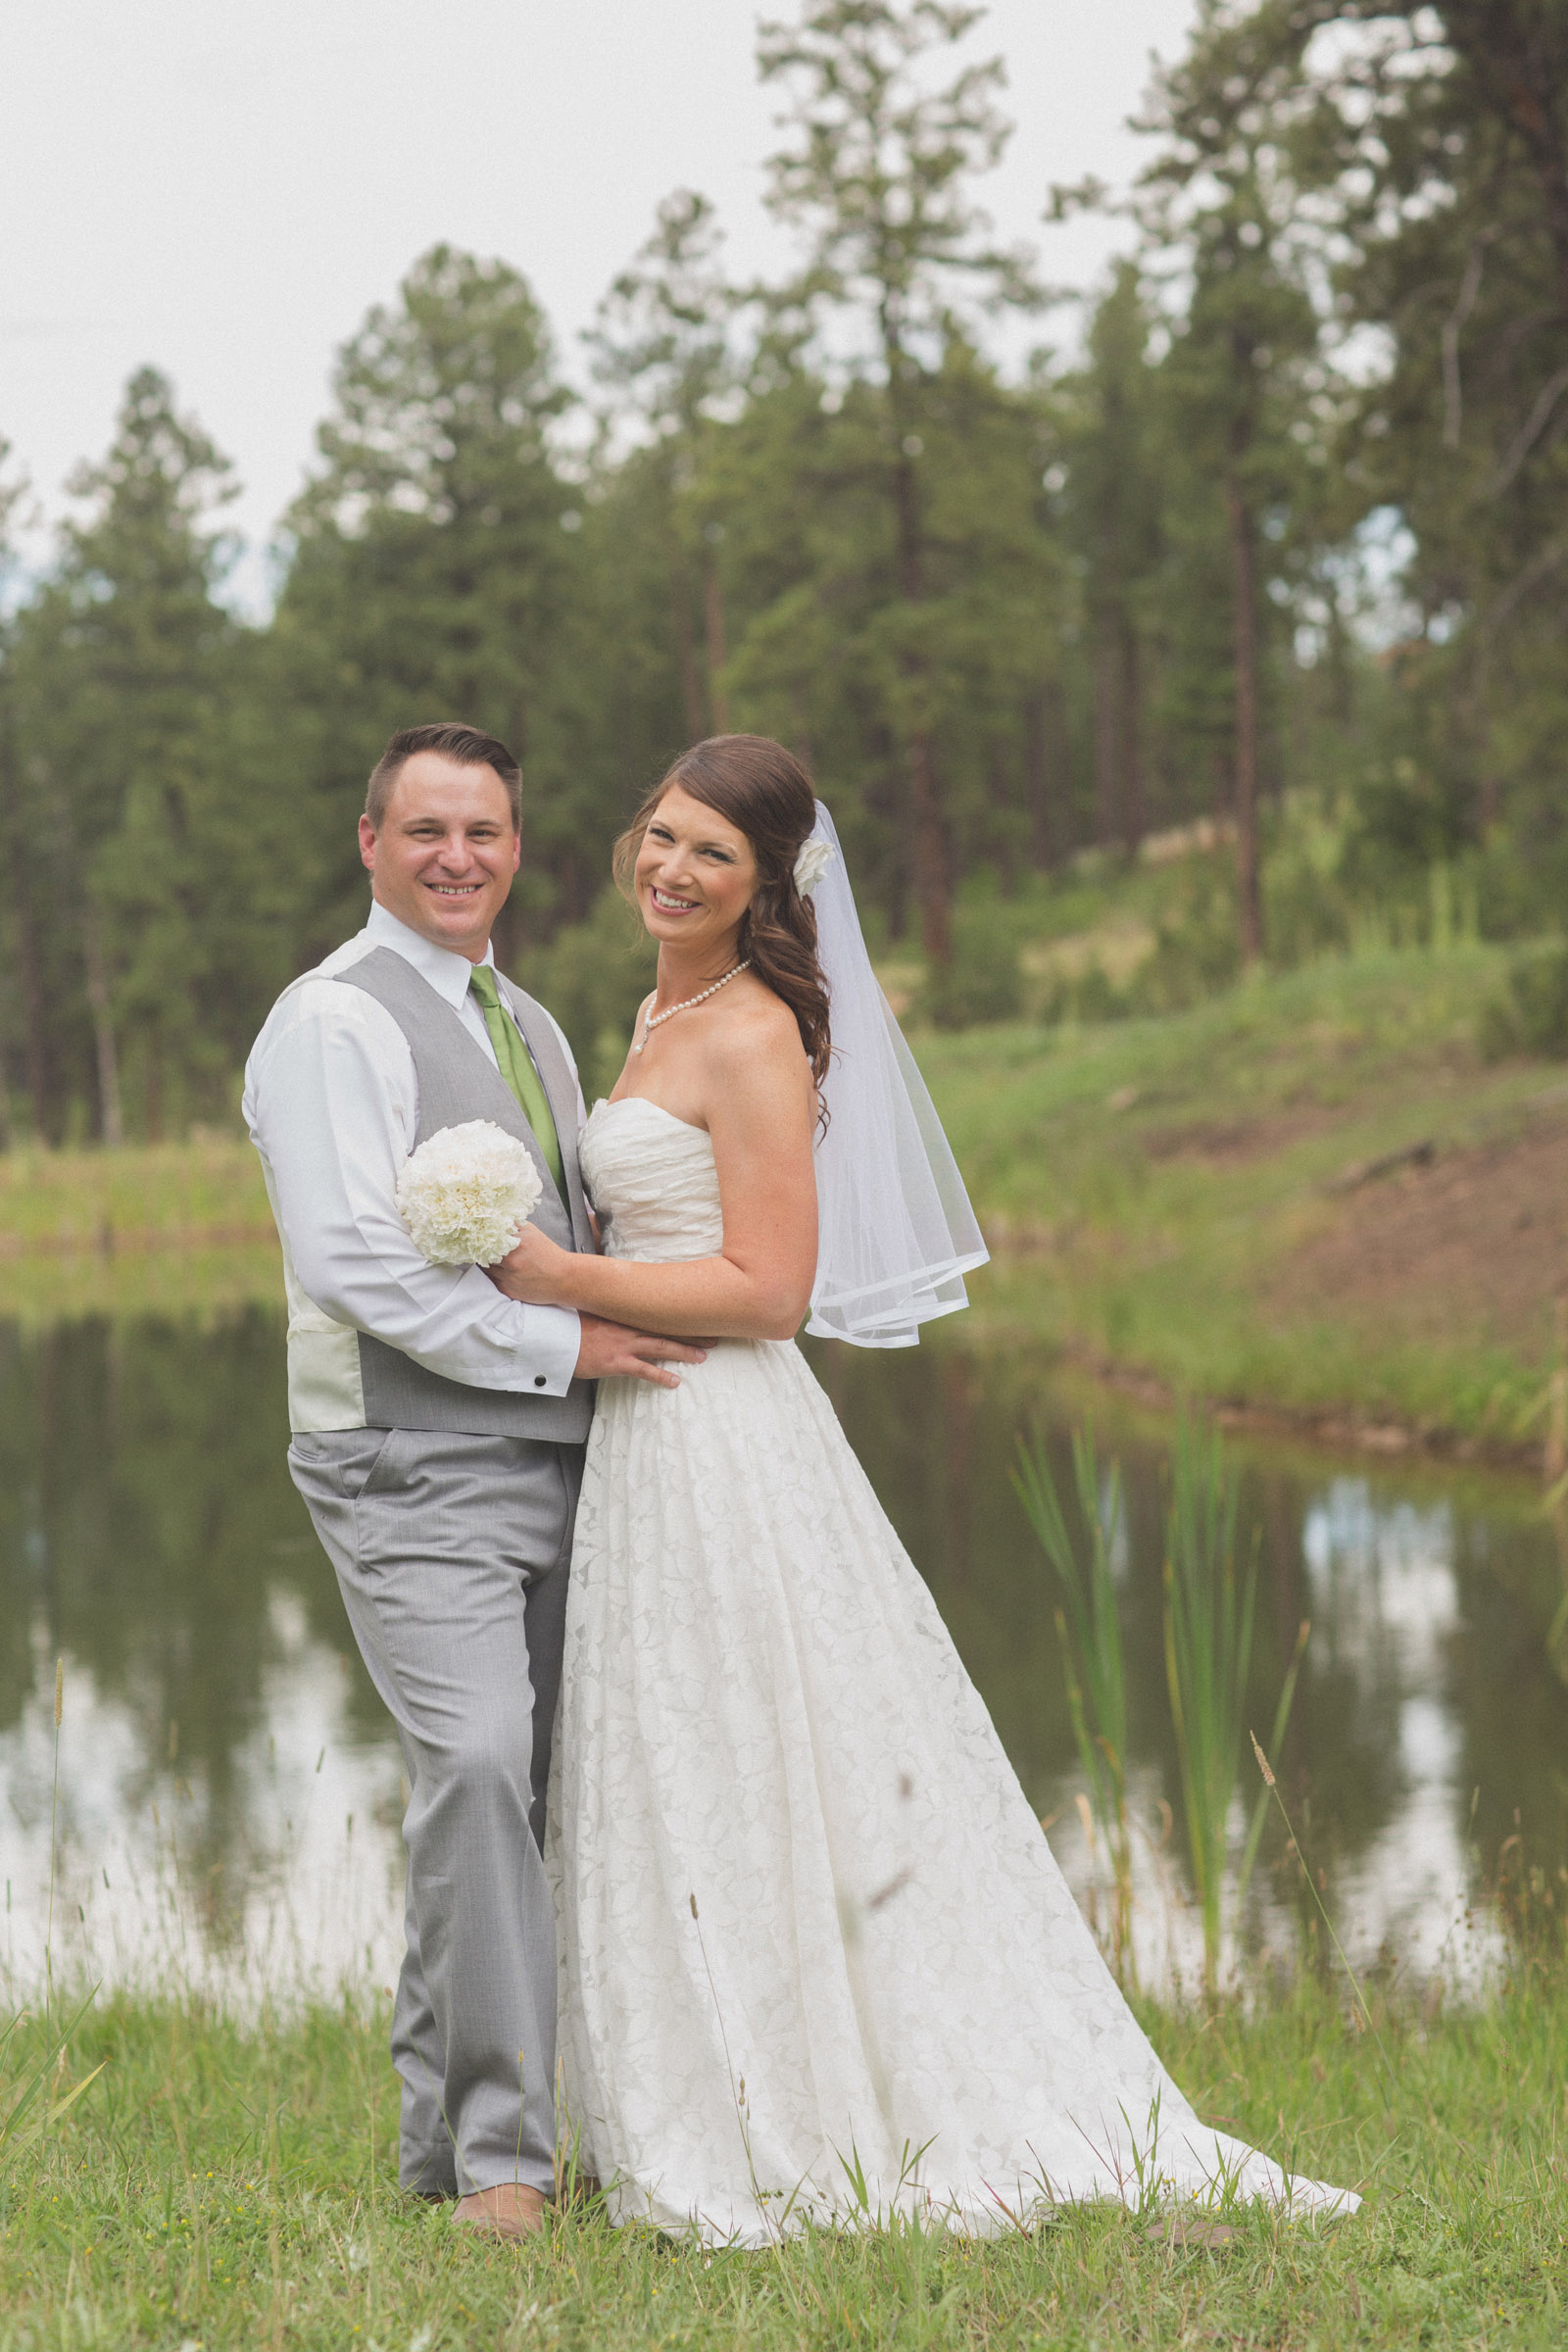 076-lake-trees-groom-bride-wedding-cabin-woods-forest-pictures-photos-dress-photography-portraits-first-look-firstlook-reveal-happy-farmington-aztec-durango-mancos-co-nm